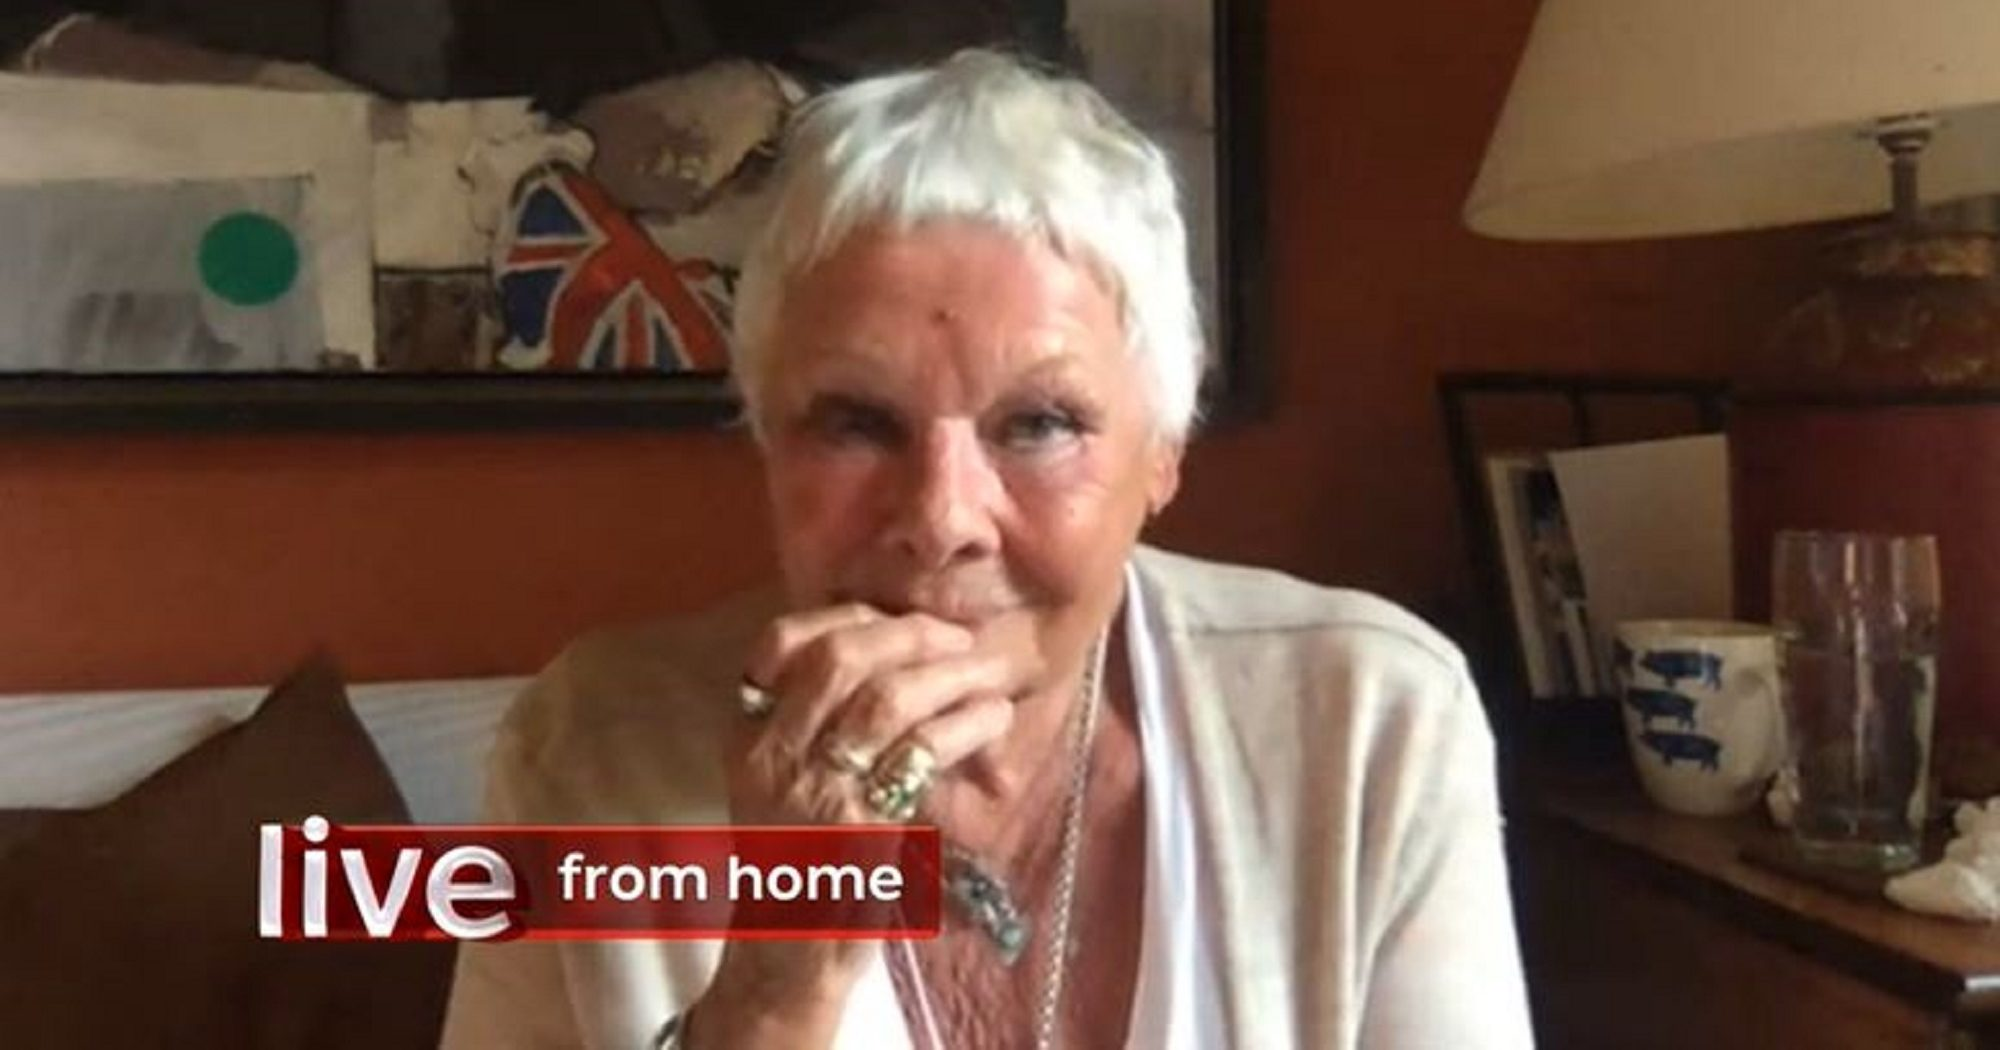 The One Show viewers in hysterics as Dame Judi Dench describes accidentally flashing pal on Skype